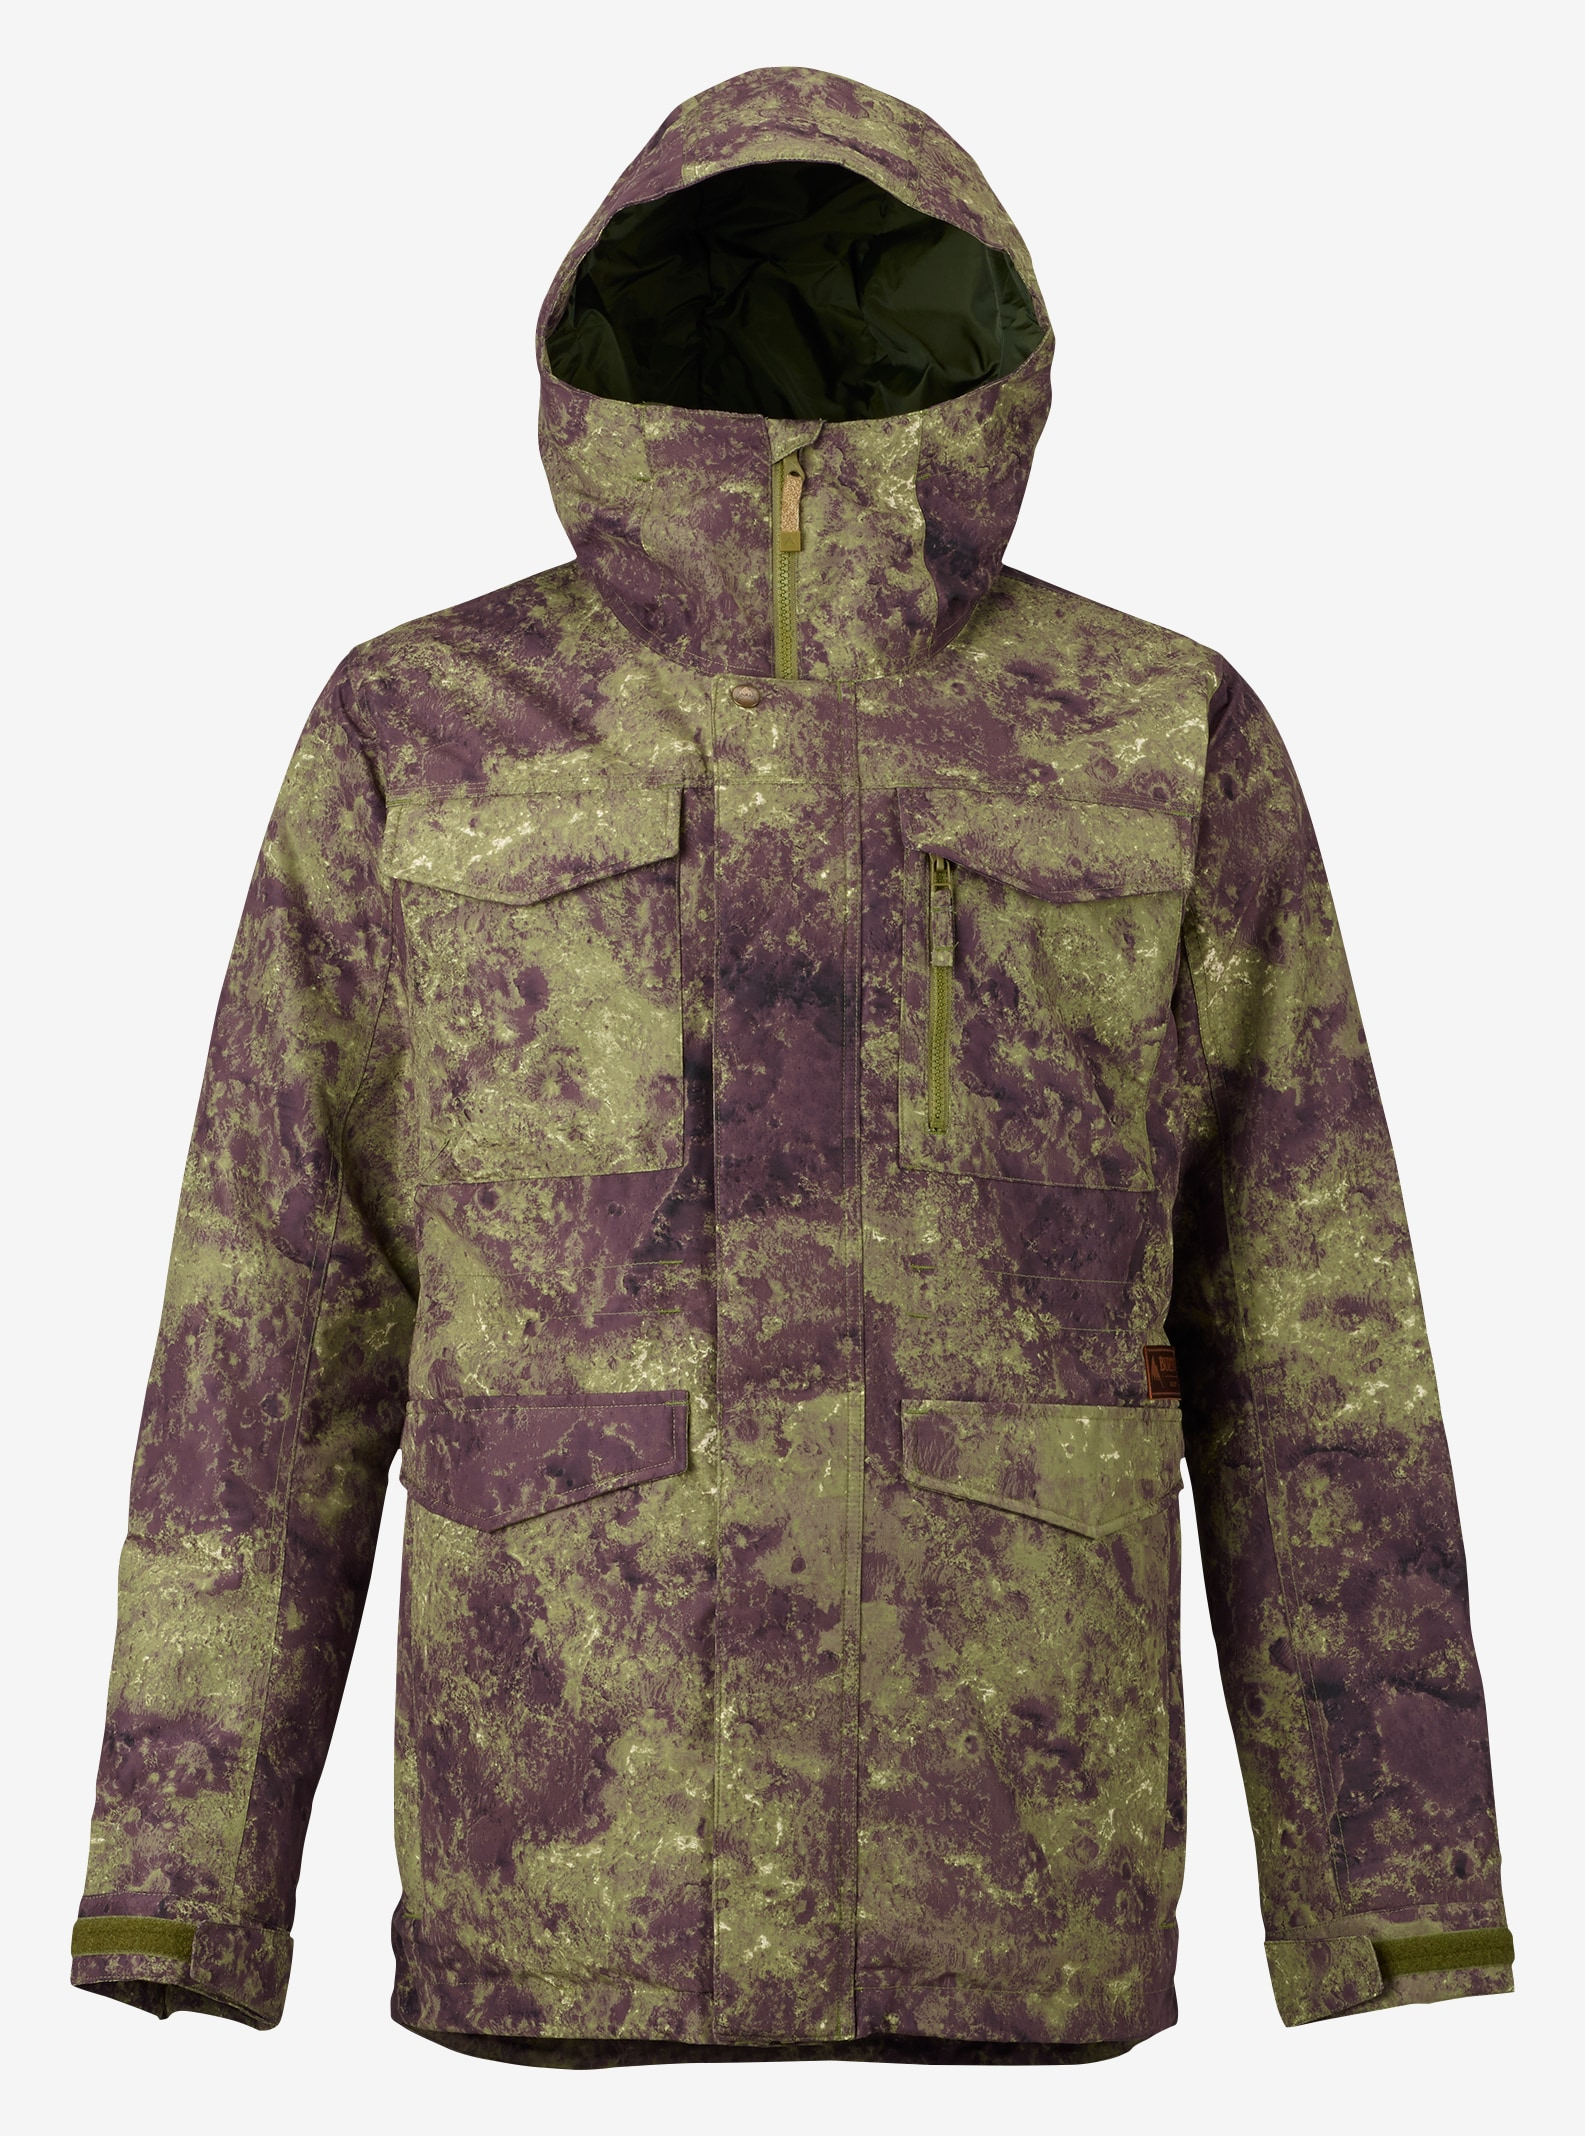 Men's Burton Covert Jacket shown in Amazonis